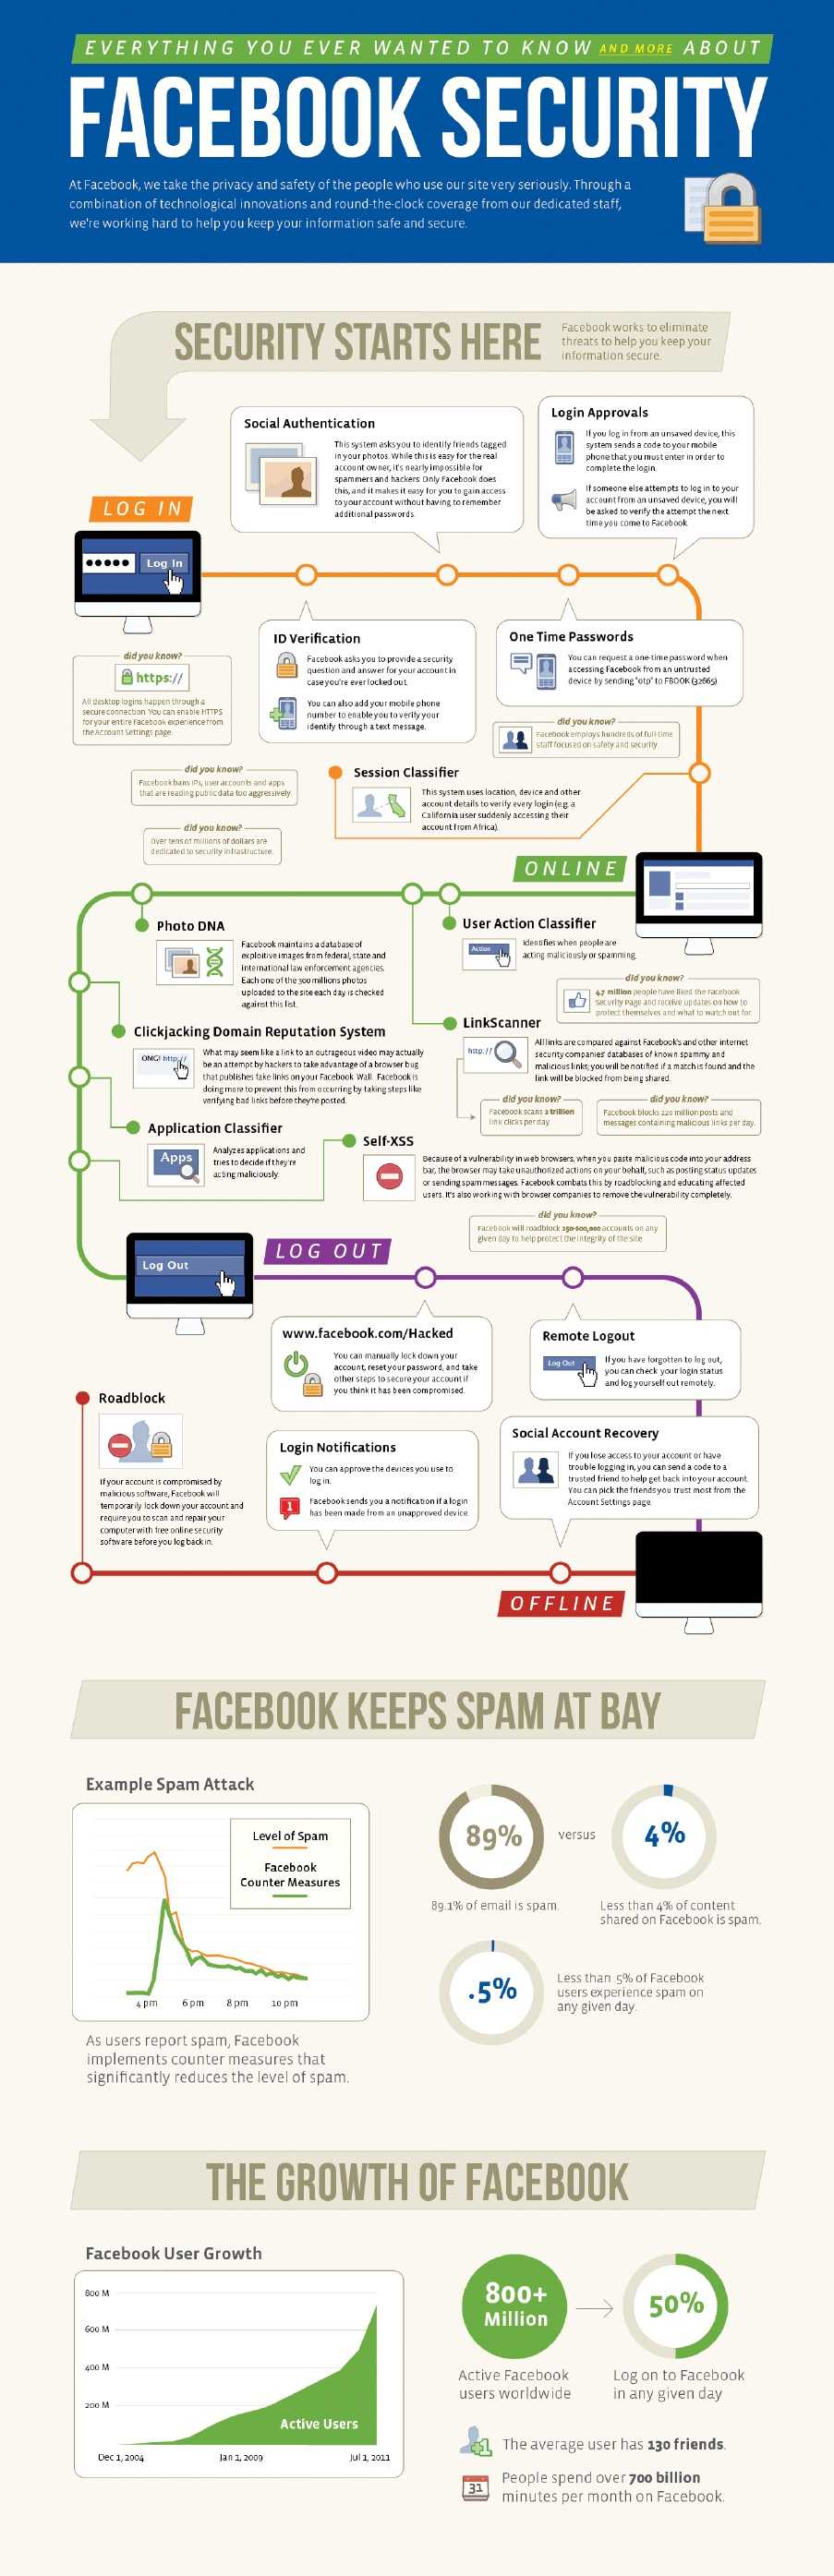 FacebookSecurityInfographic